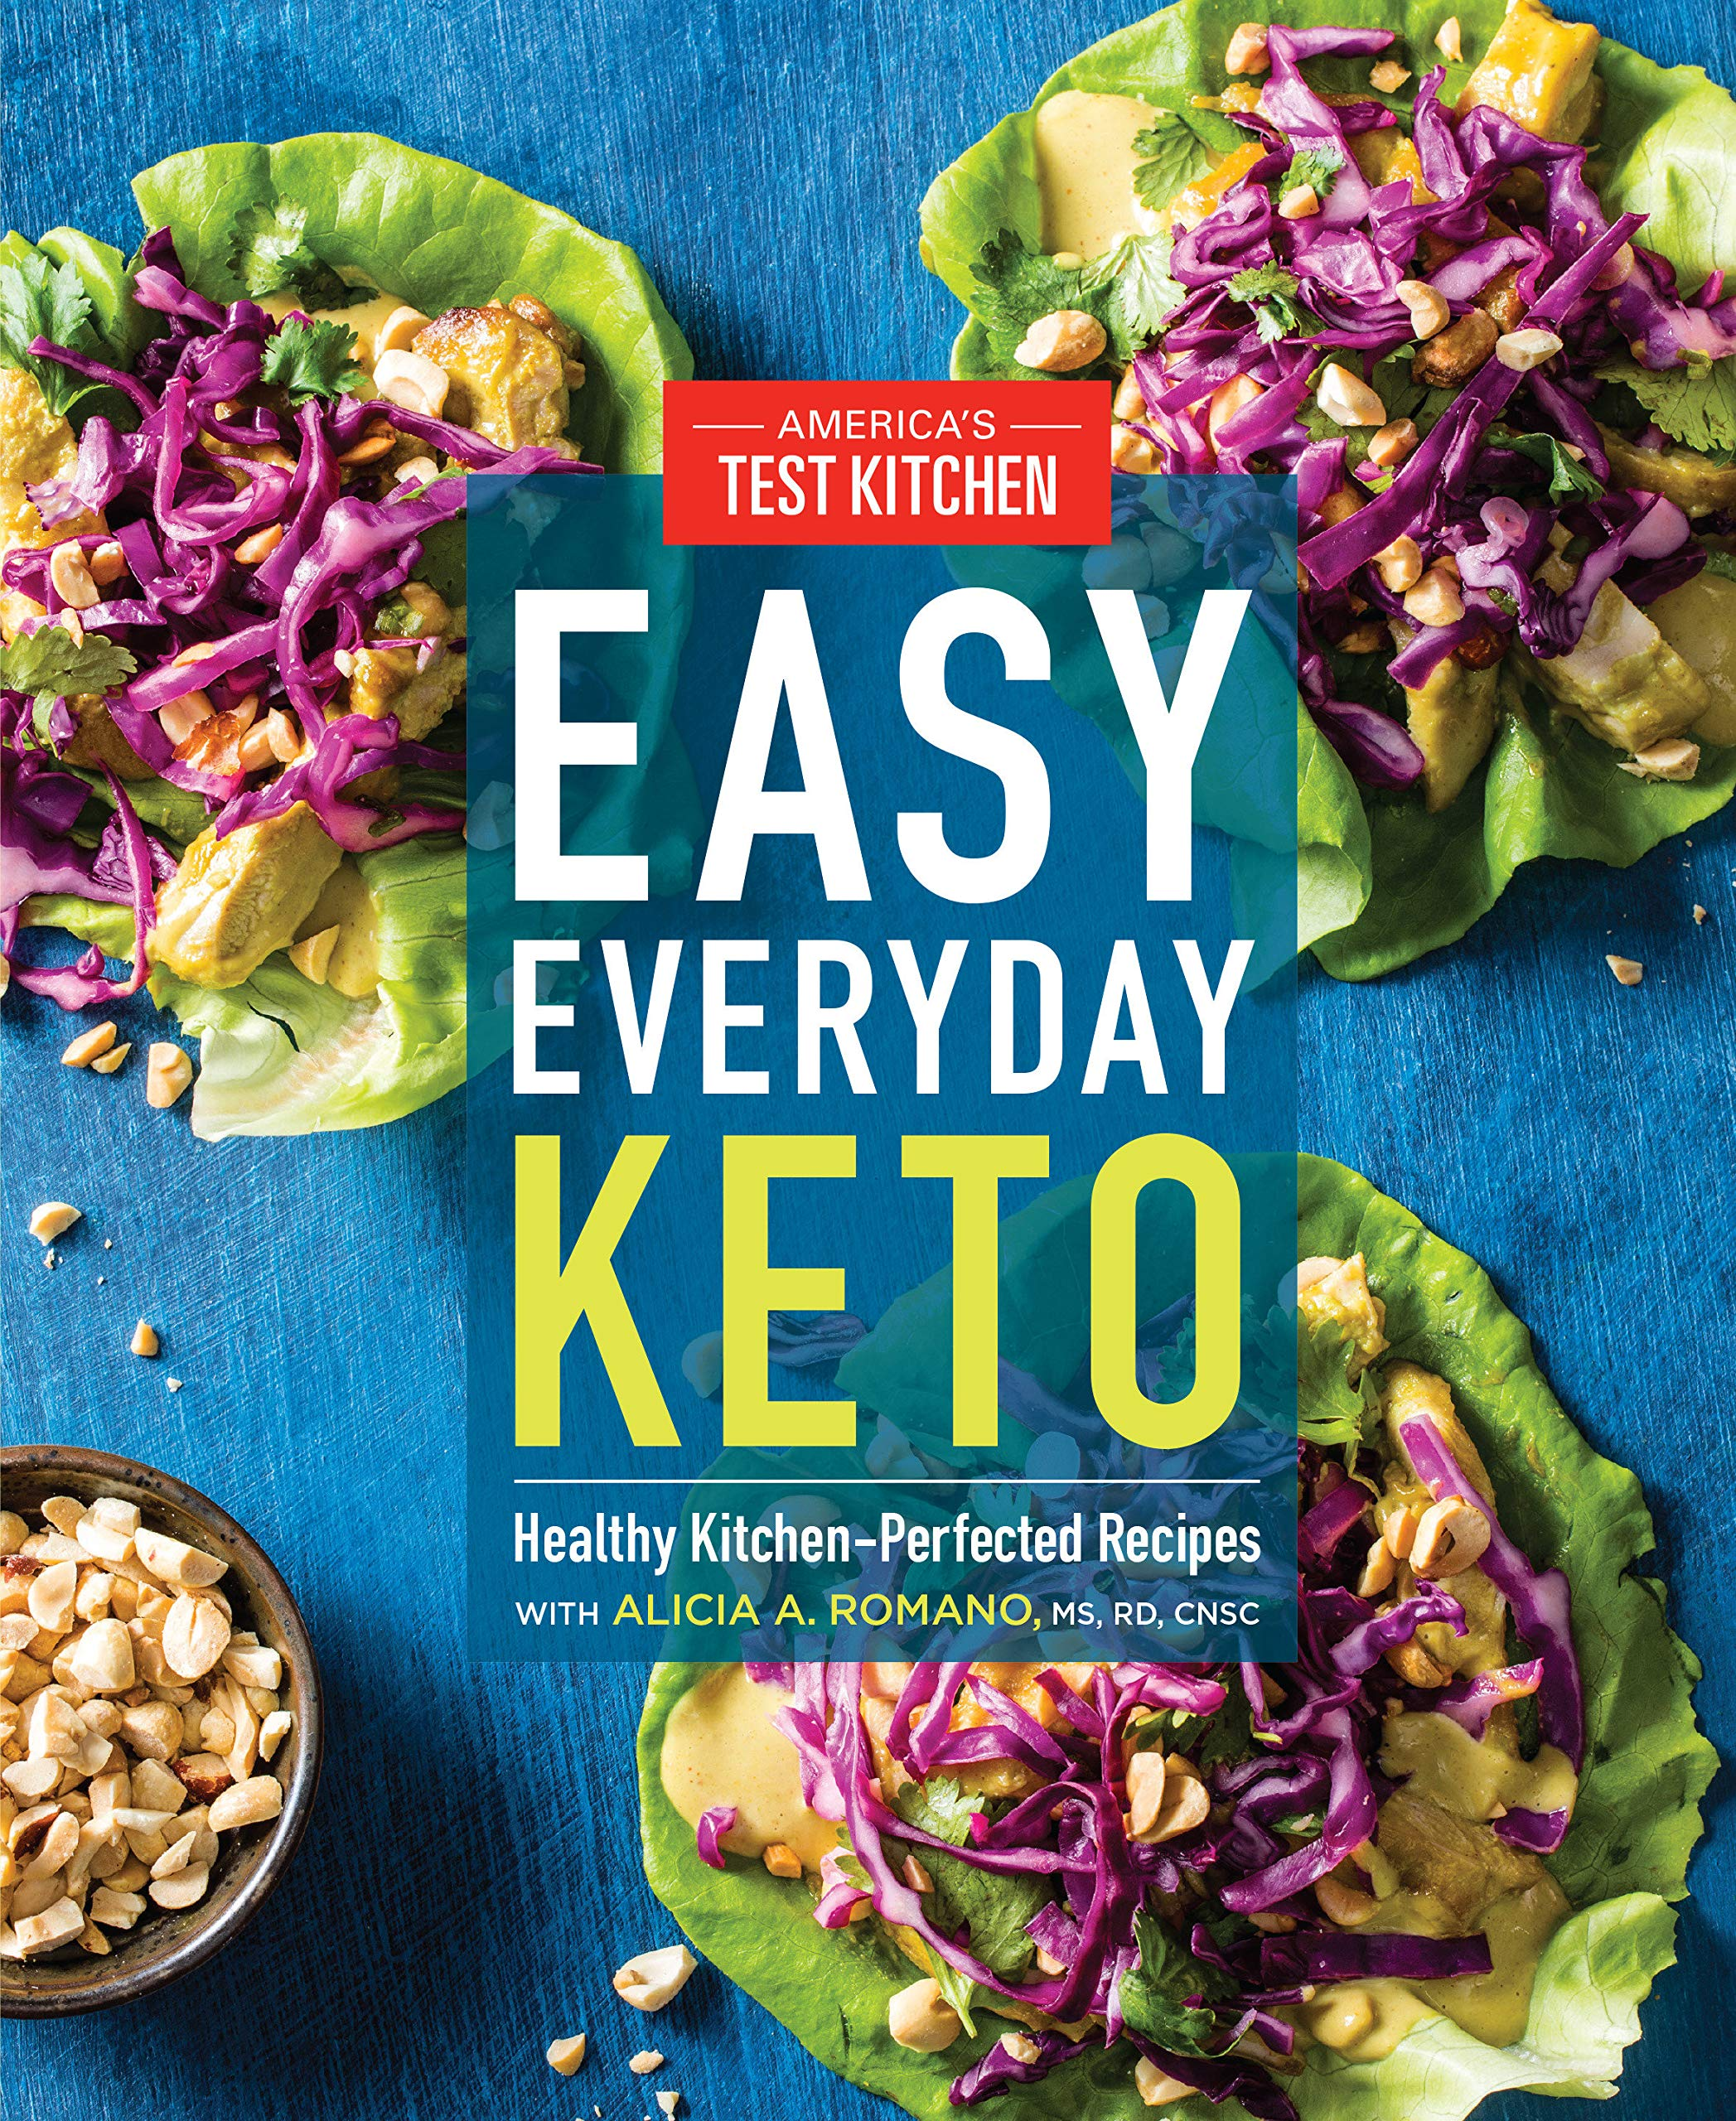 does americas test kitchen have a keto diet